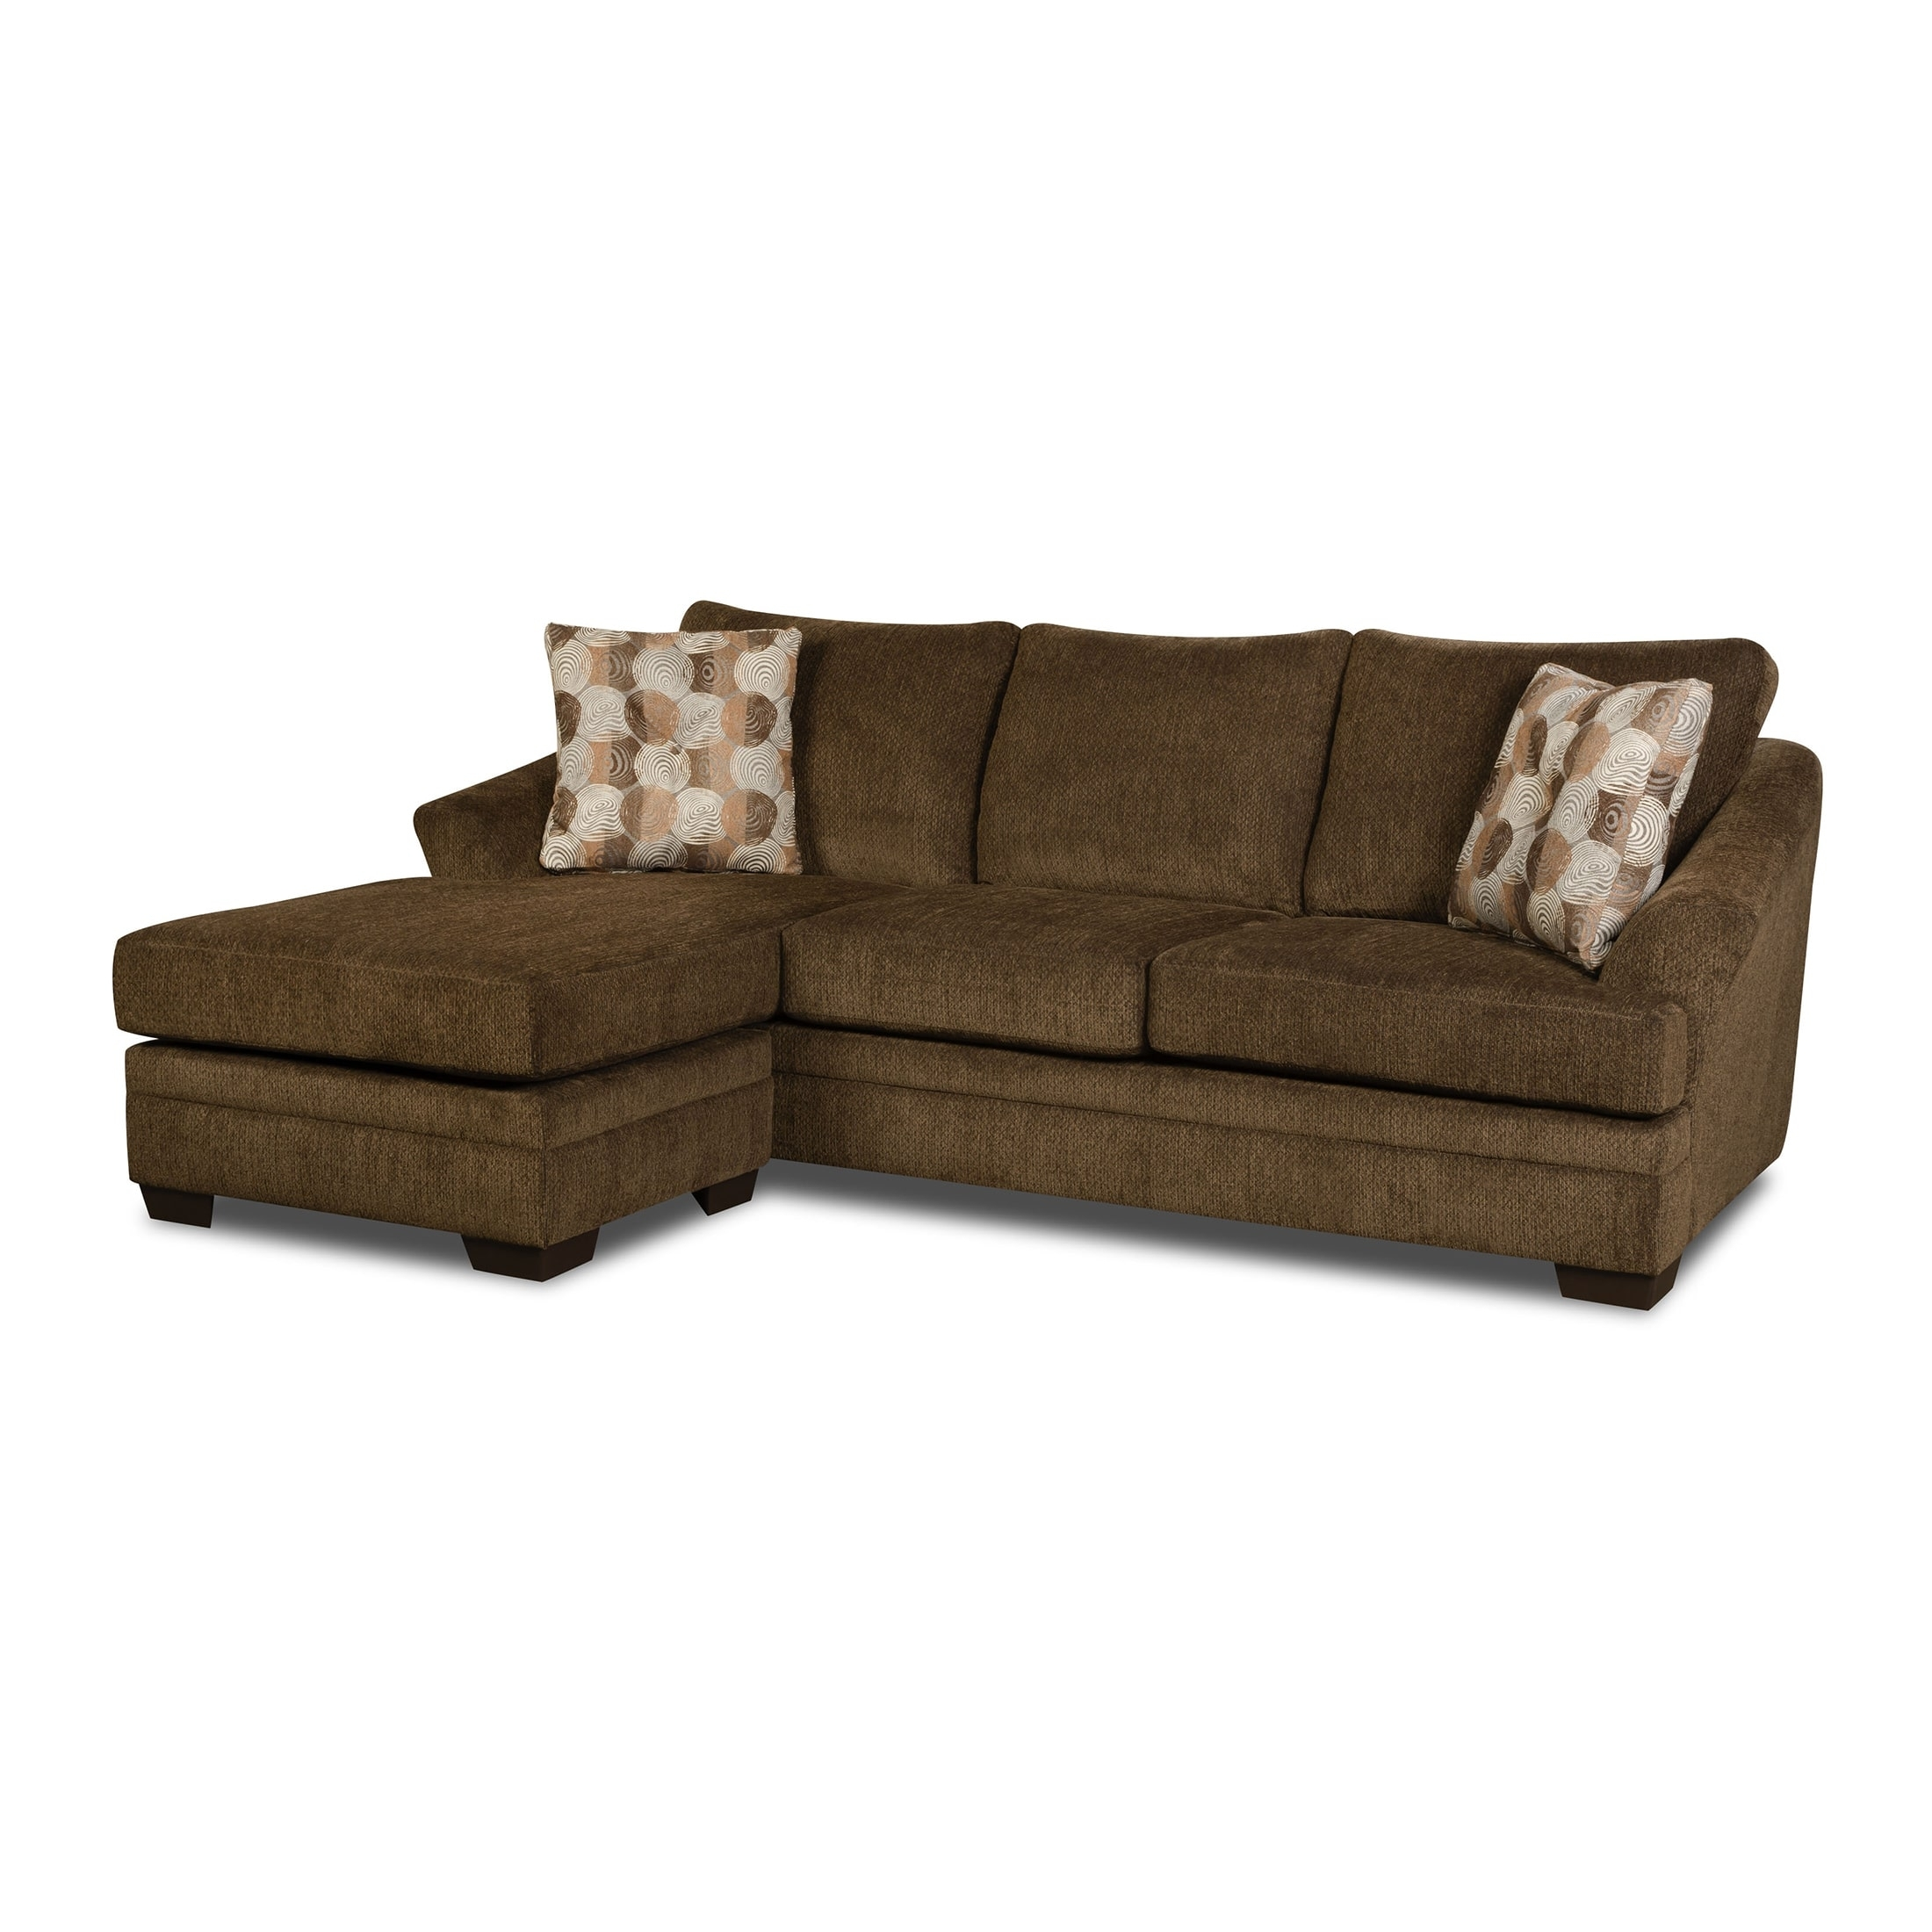 Simmons Upholstery Albany Sofa Chaise – Walmart Inside Simmons Chaise Sofas (View 7 of 10)